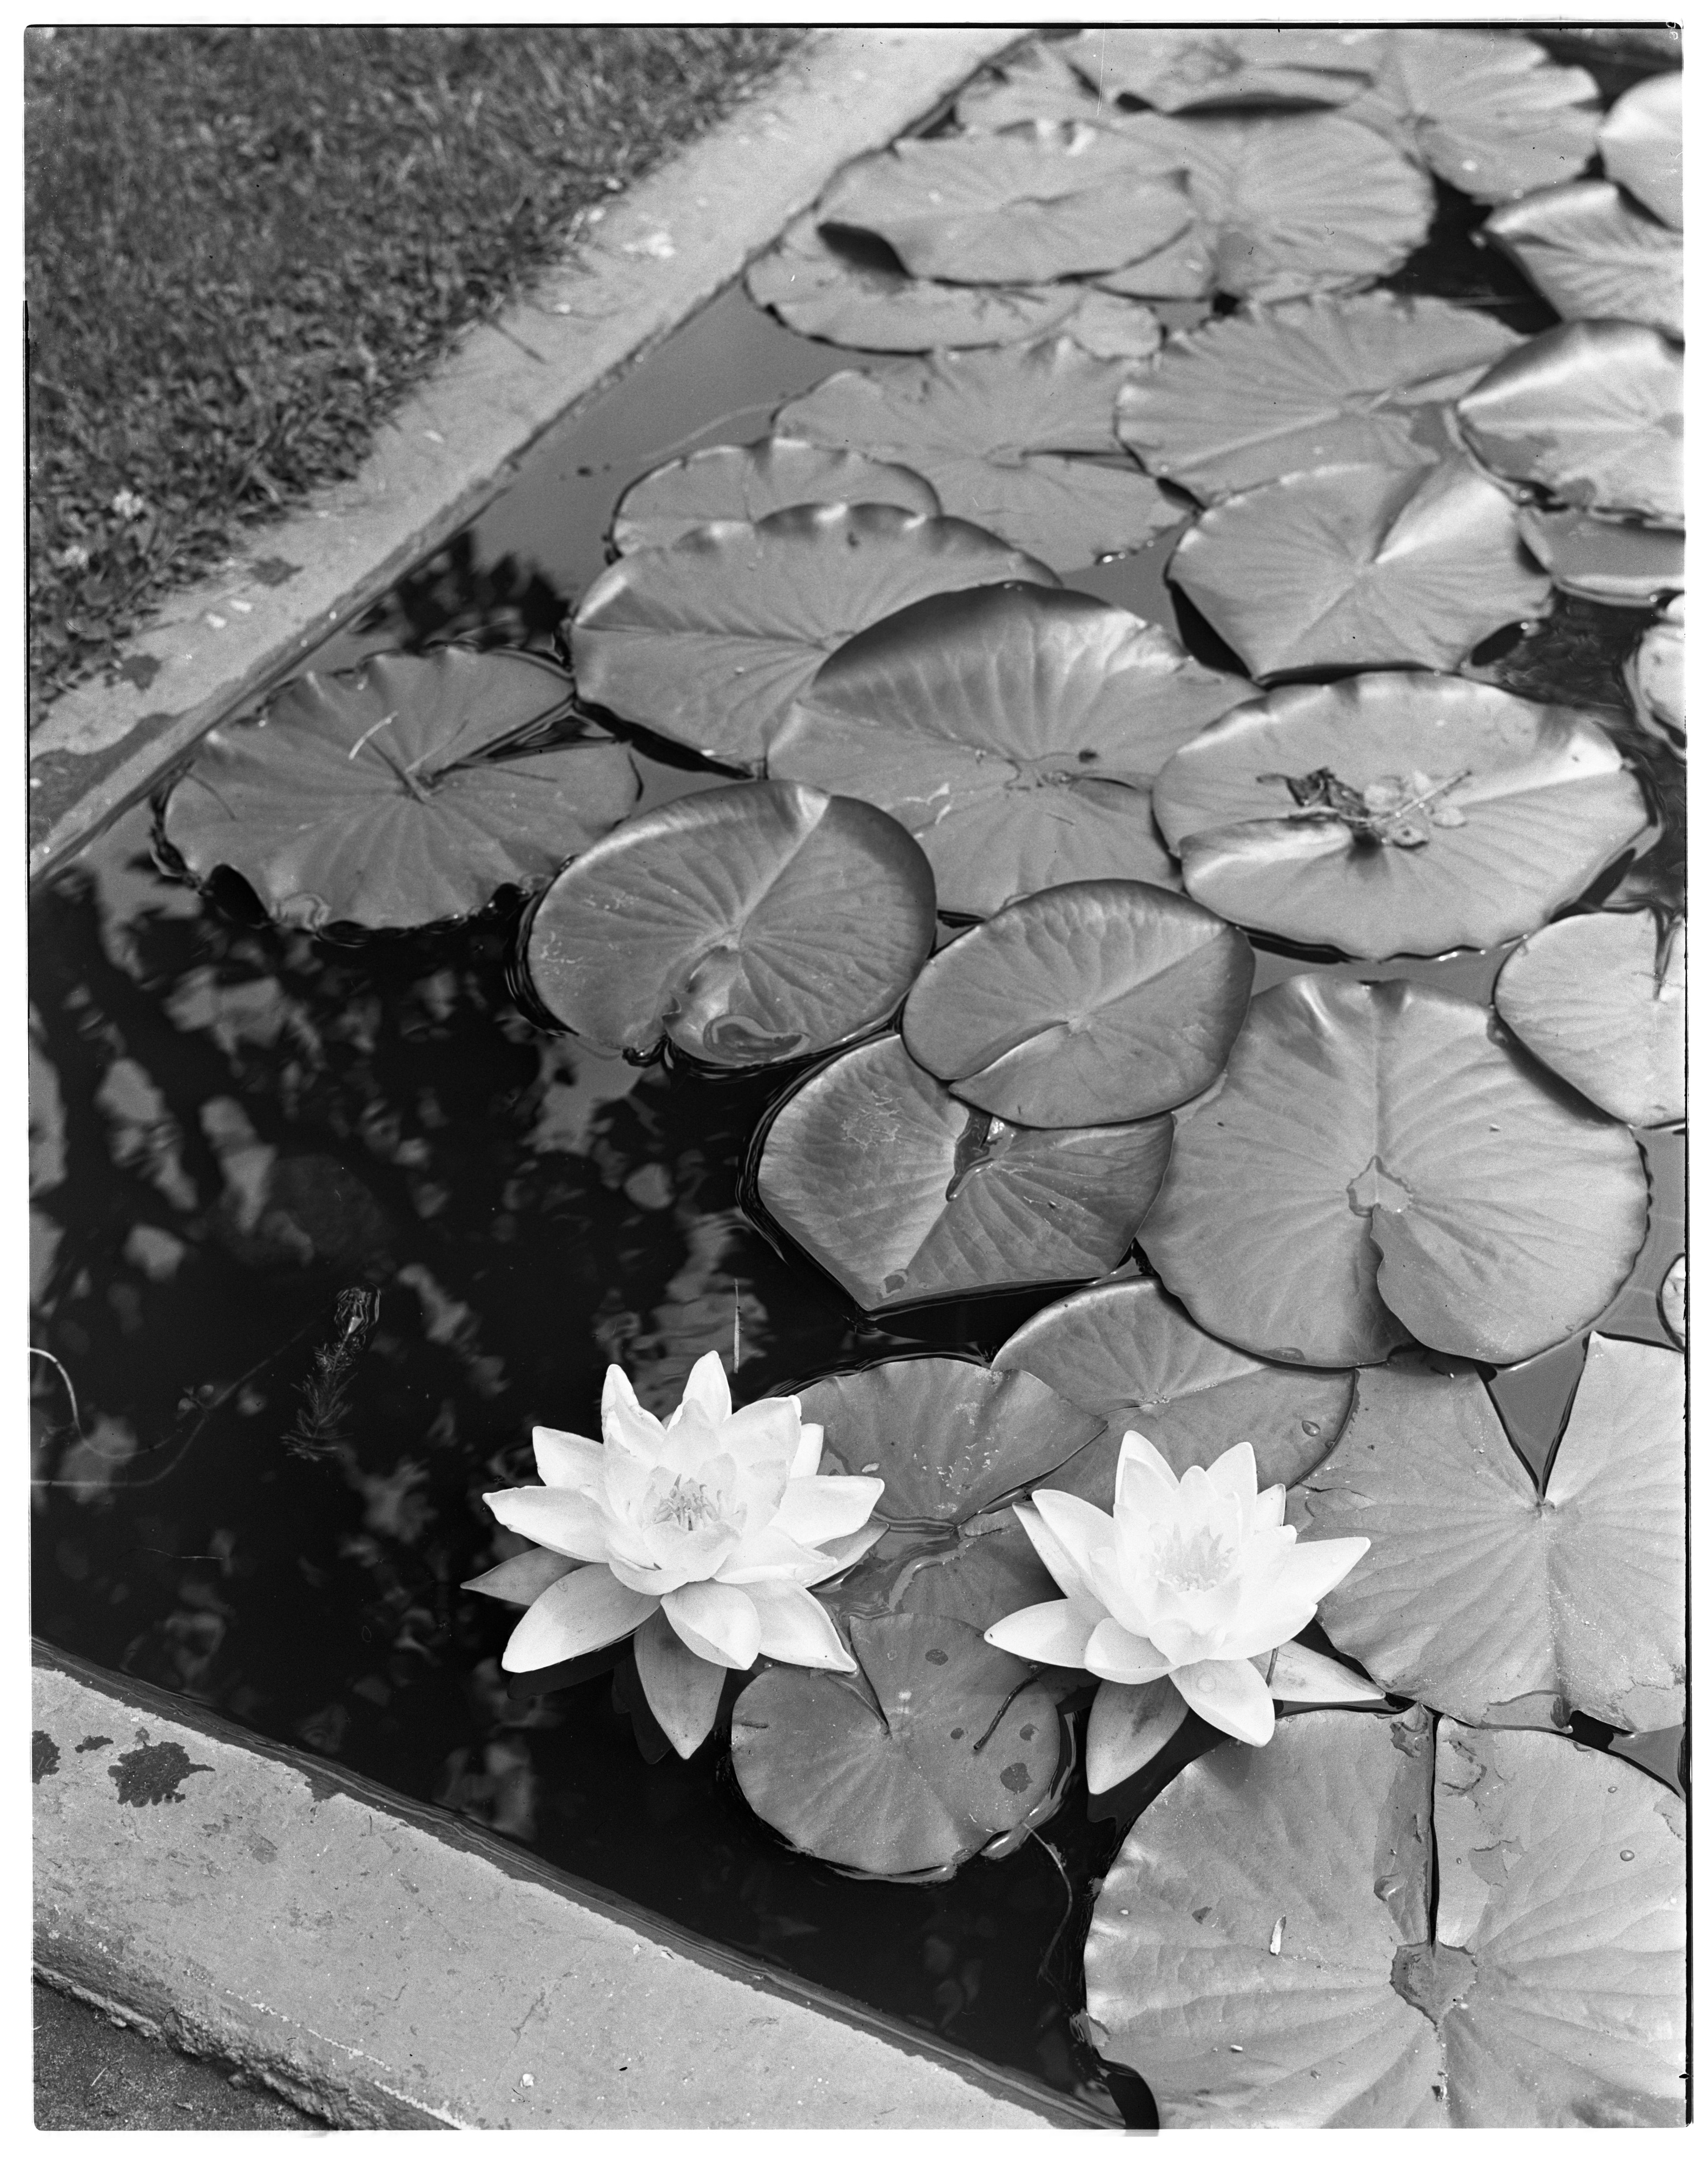 Water Lilies in Frederick J. Heusel and Edith F. Heusel Garden on Spring Street image